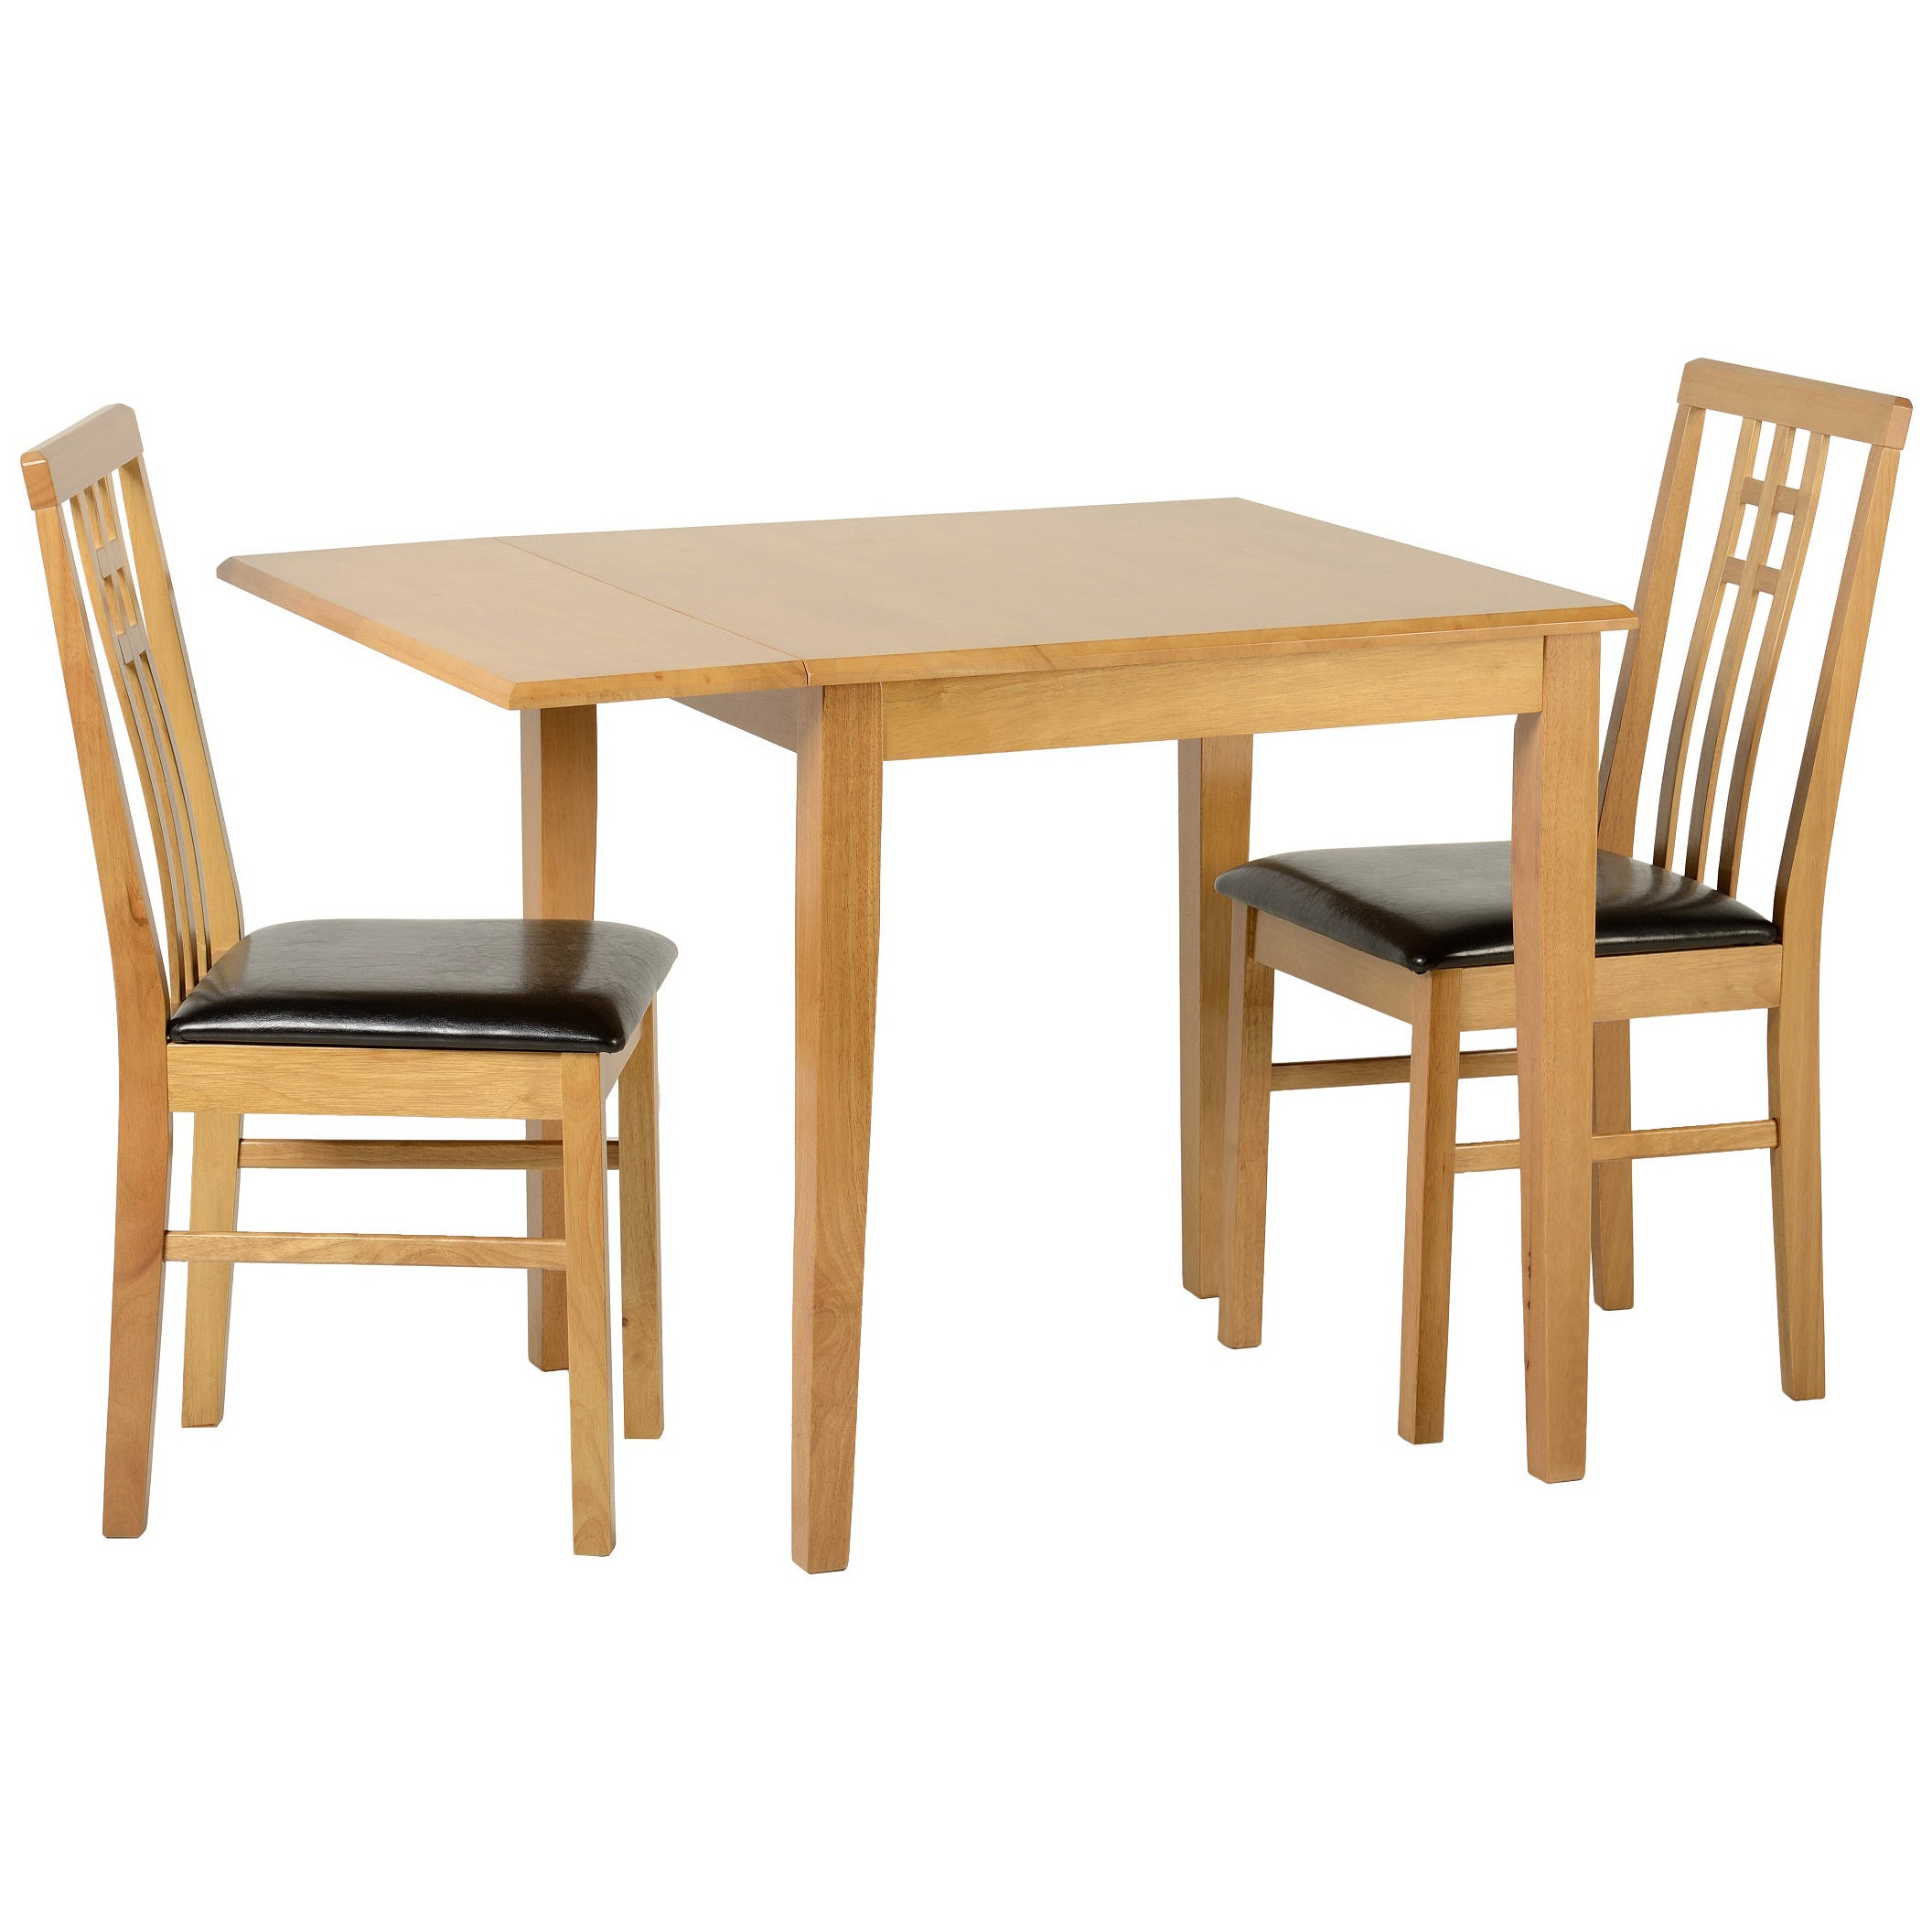 Picture of: Oak Square Extending Extendable Dining Table And Chair Set With 2 Leather Seats Turquoise Co Uk